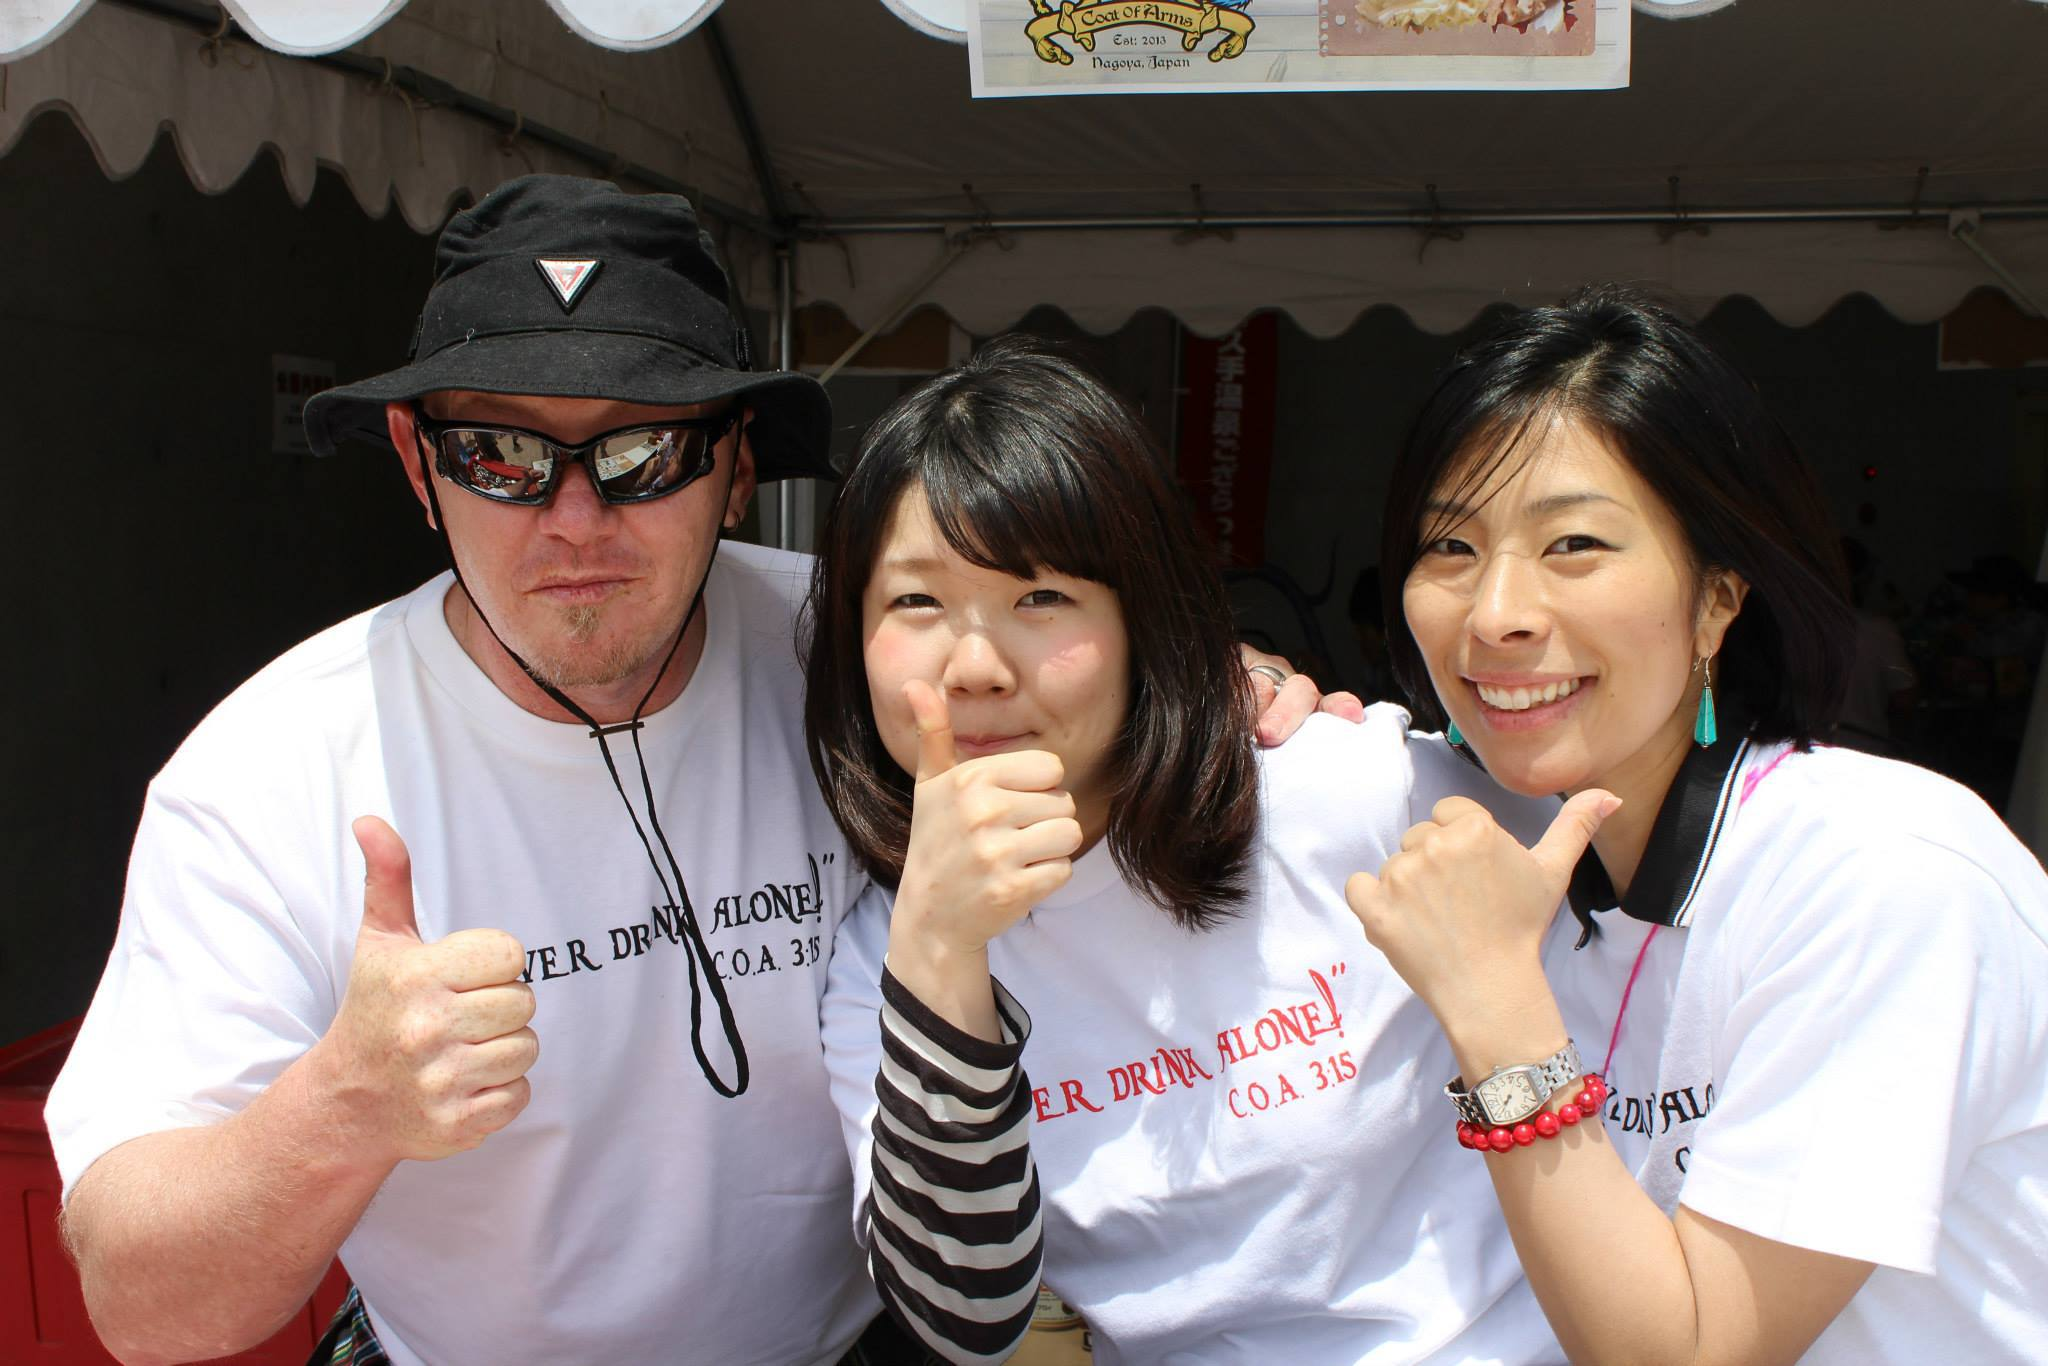 Food vendors at 2013 Chubu Walkathon